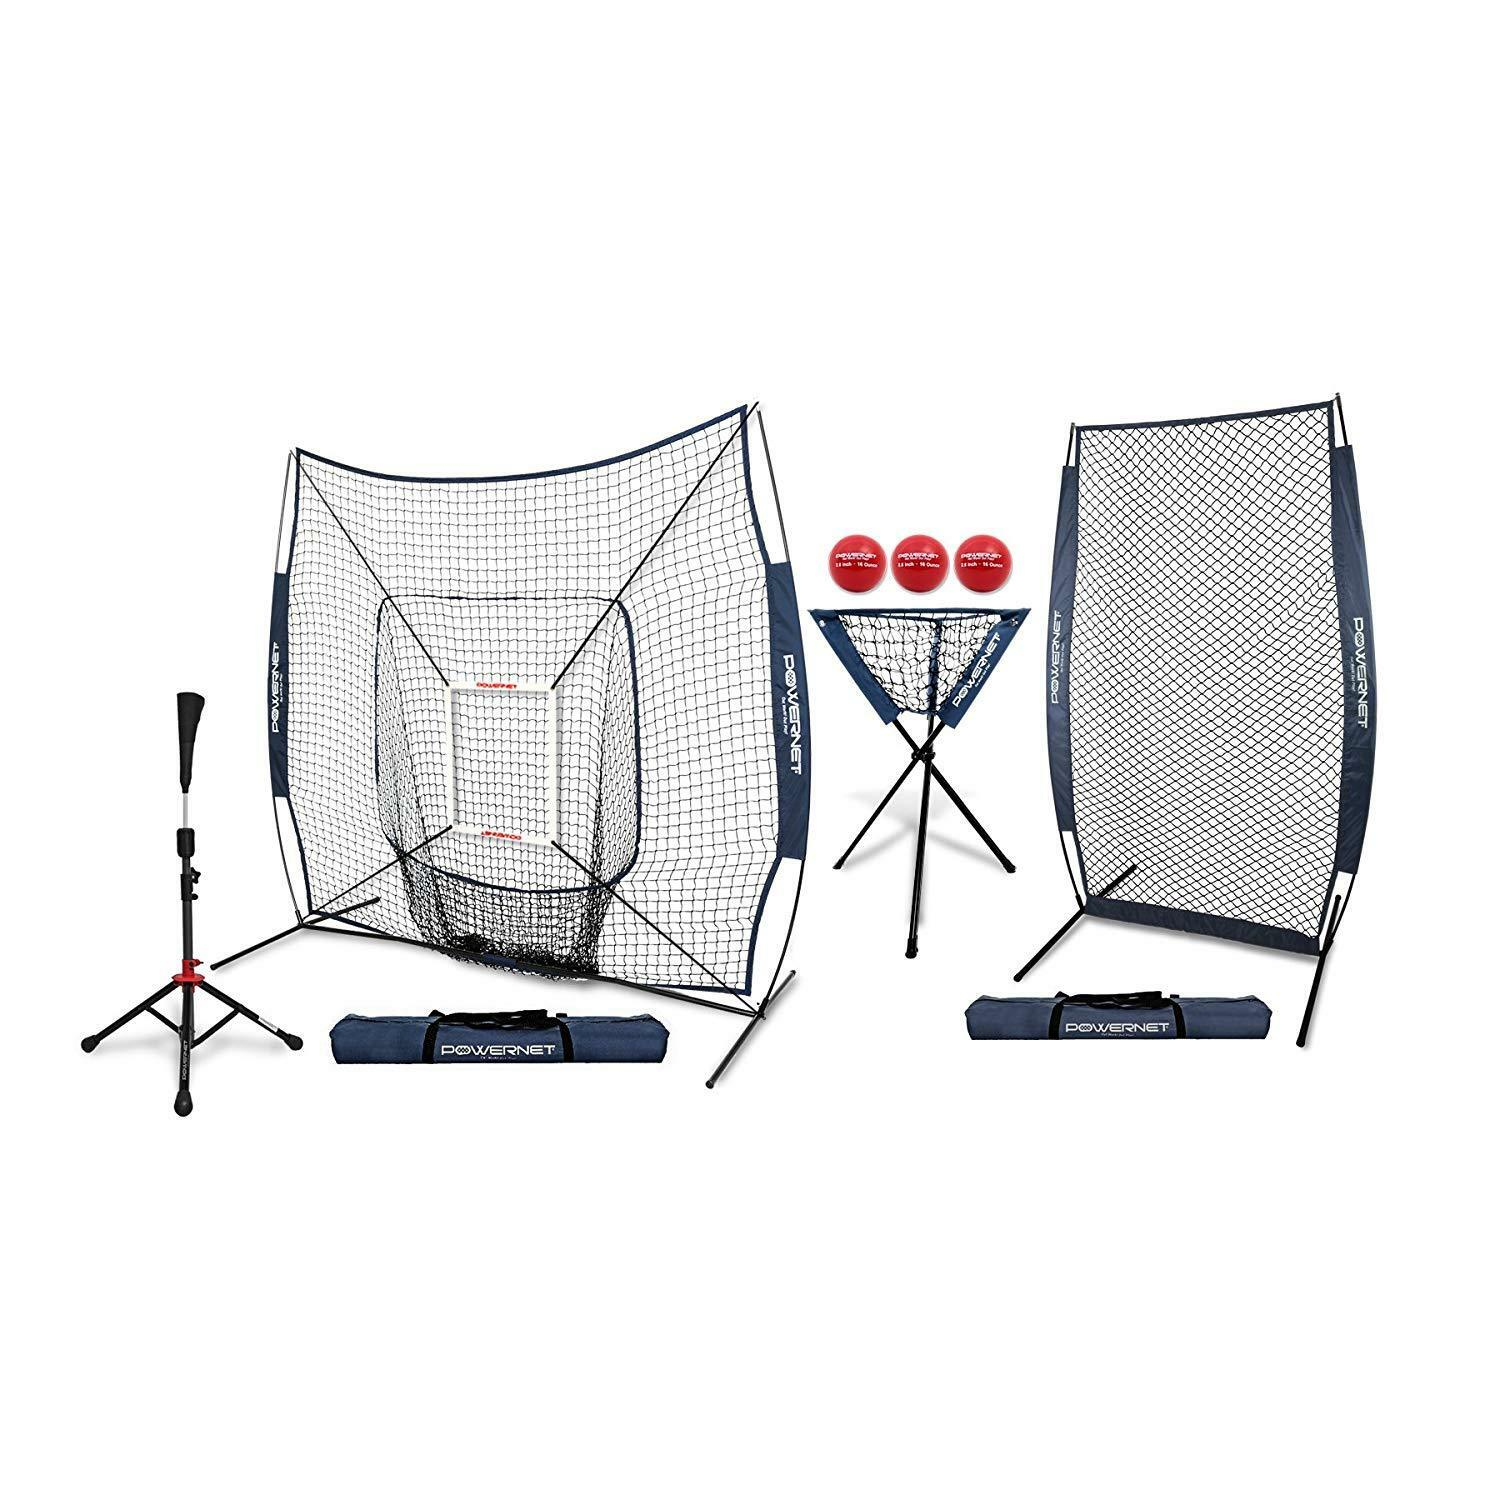 PowerNet DLX All All All in One Net Baseball Bundle w Tee, Ball Caddy, I-Screen and More 56e5d8